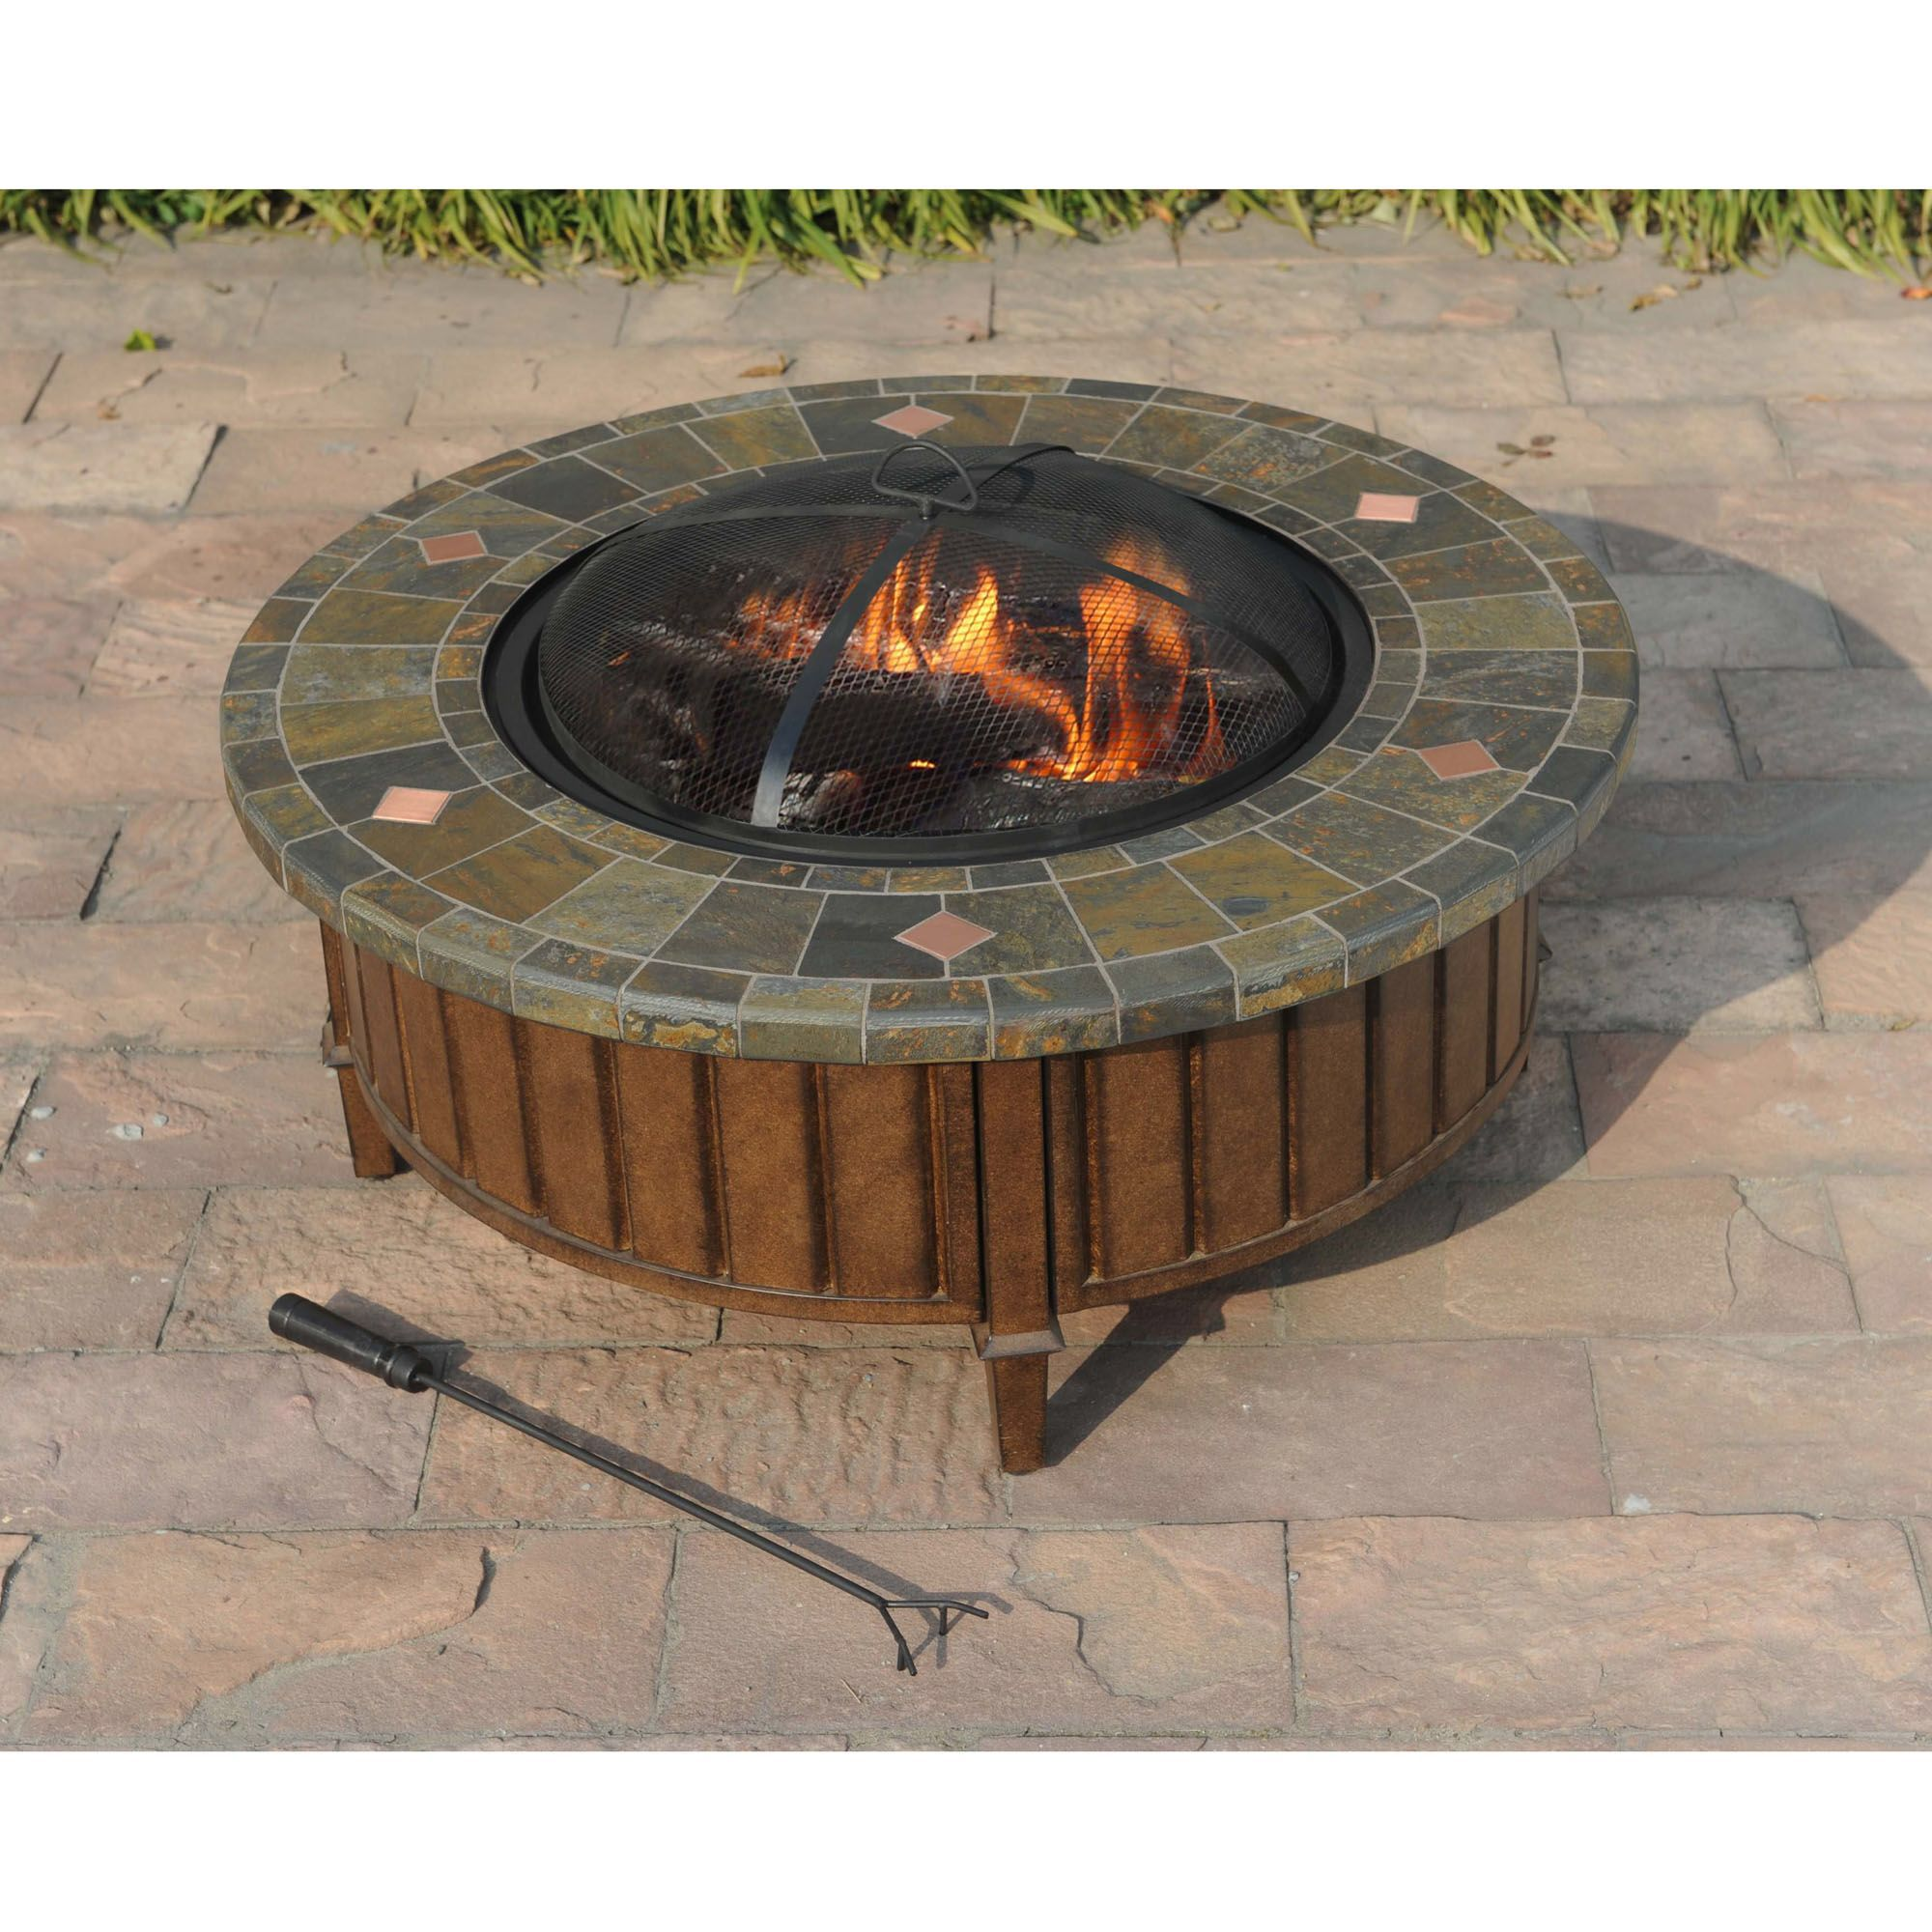 Pecan Fire Pit | Wood burning fire pit, Outdoor fire pit ...